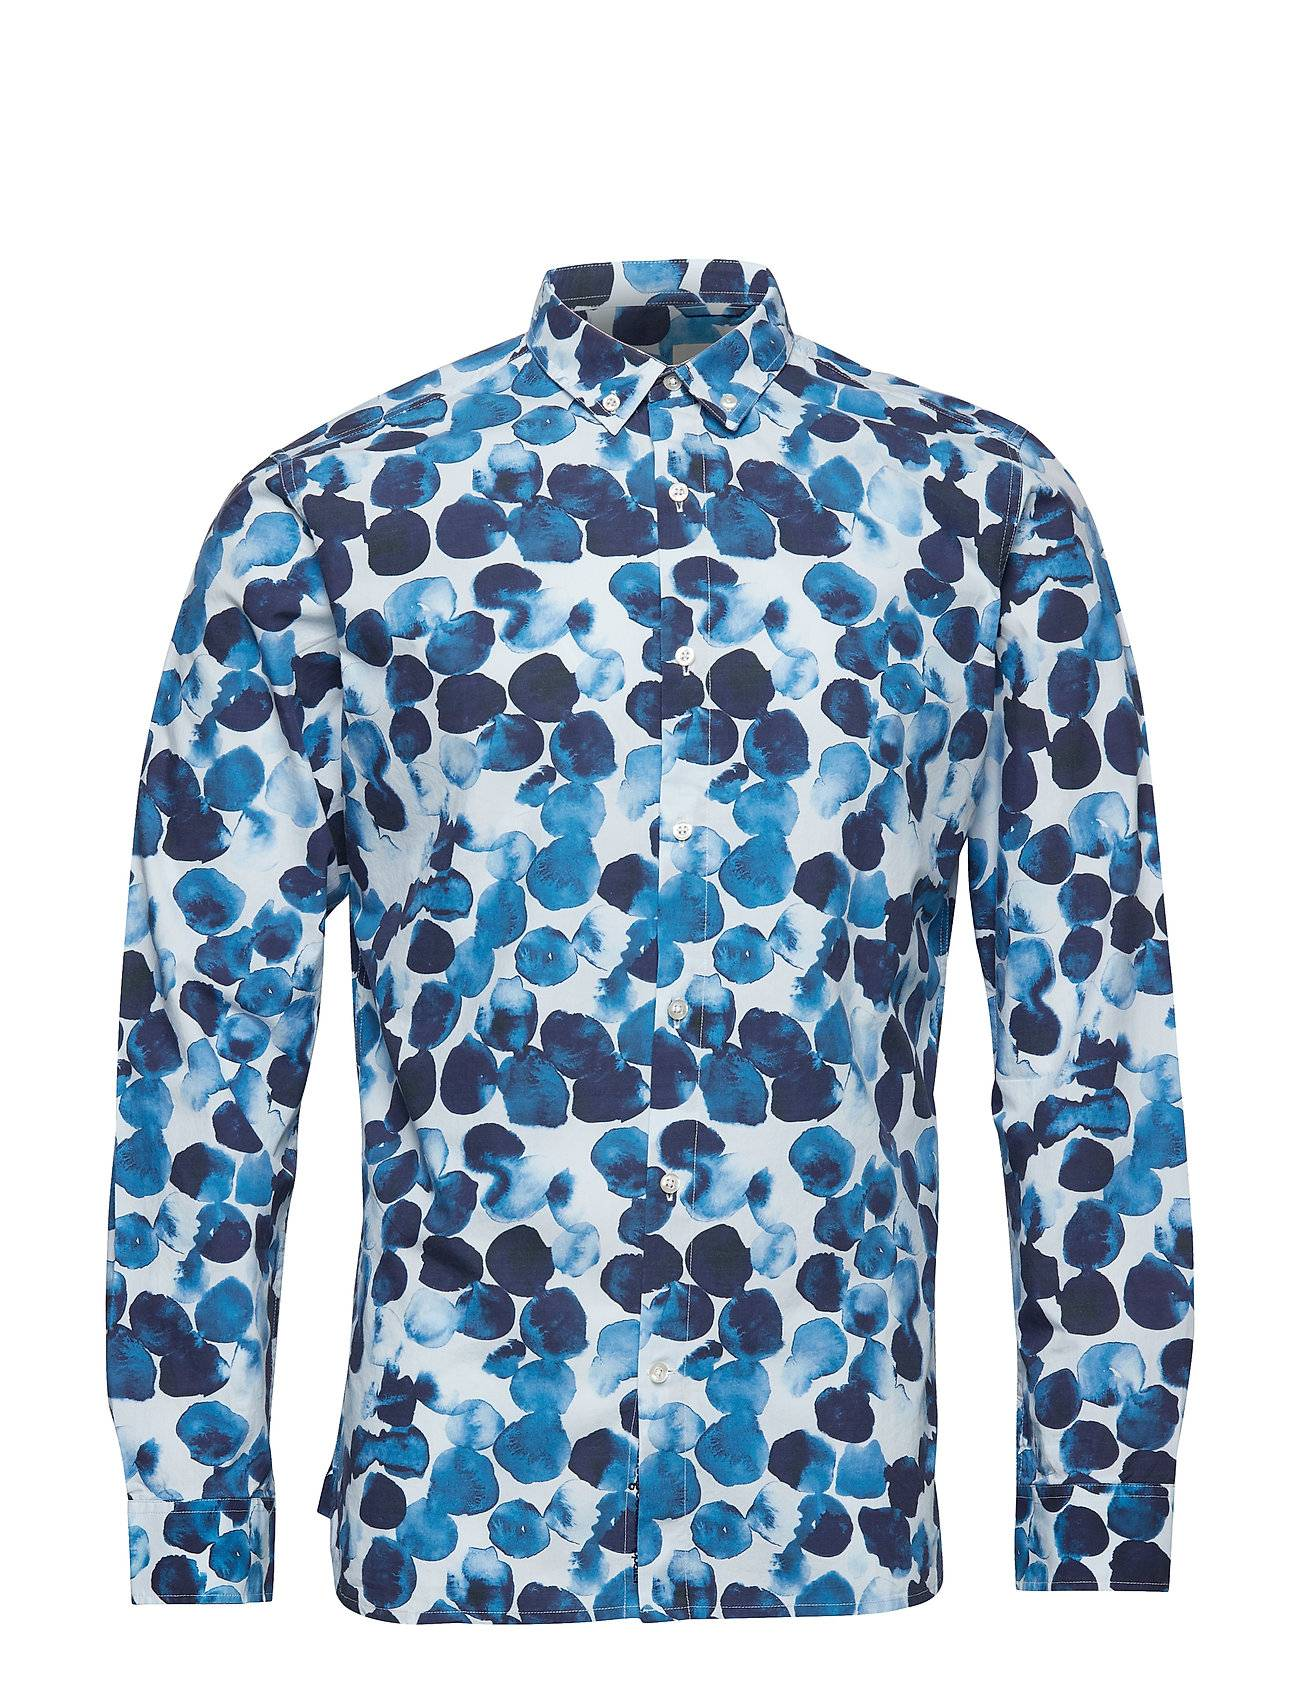 Knowledge Cotton Apparel Water Based Dot Printed Shirt - Got